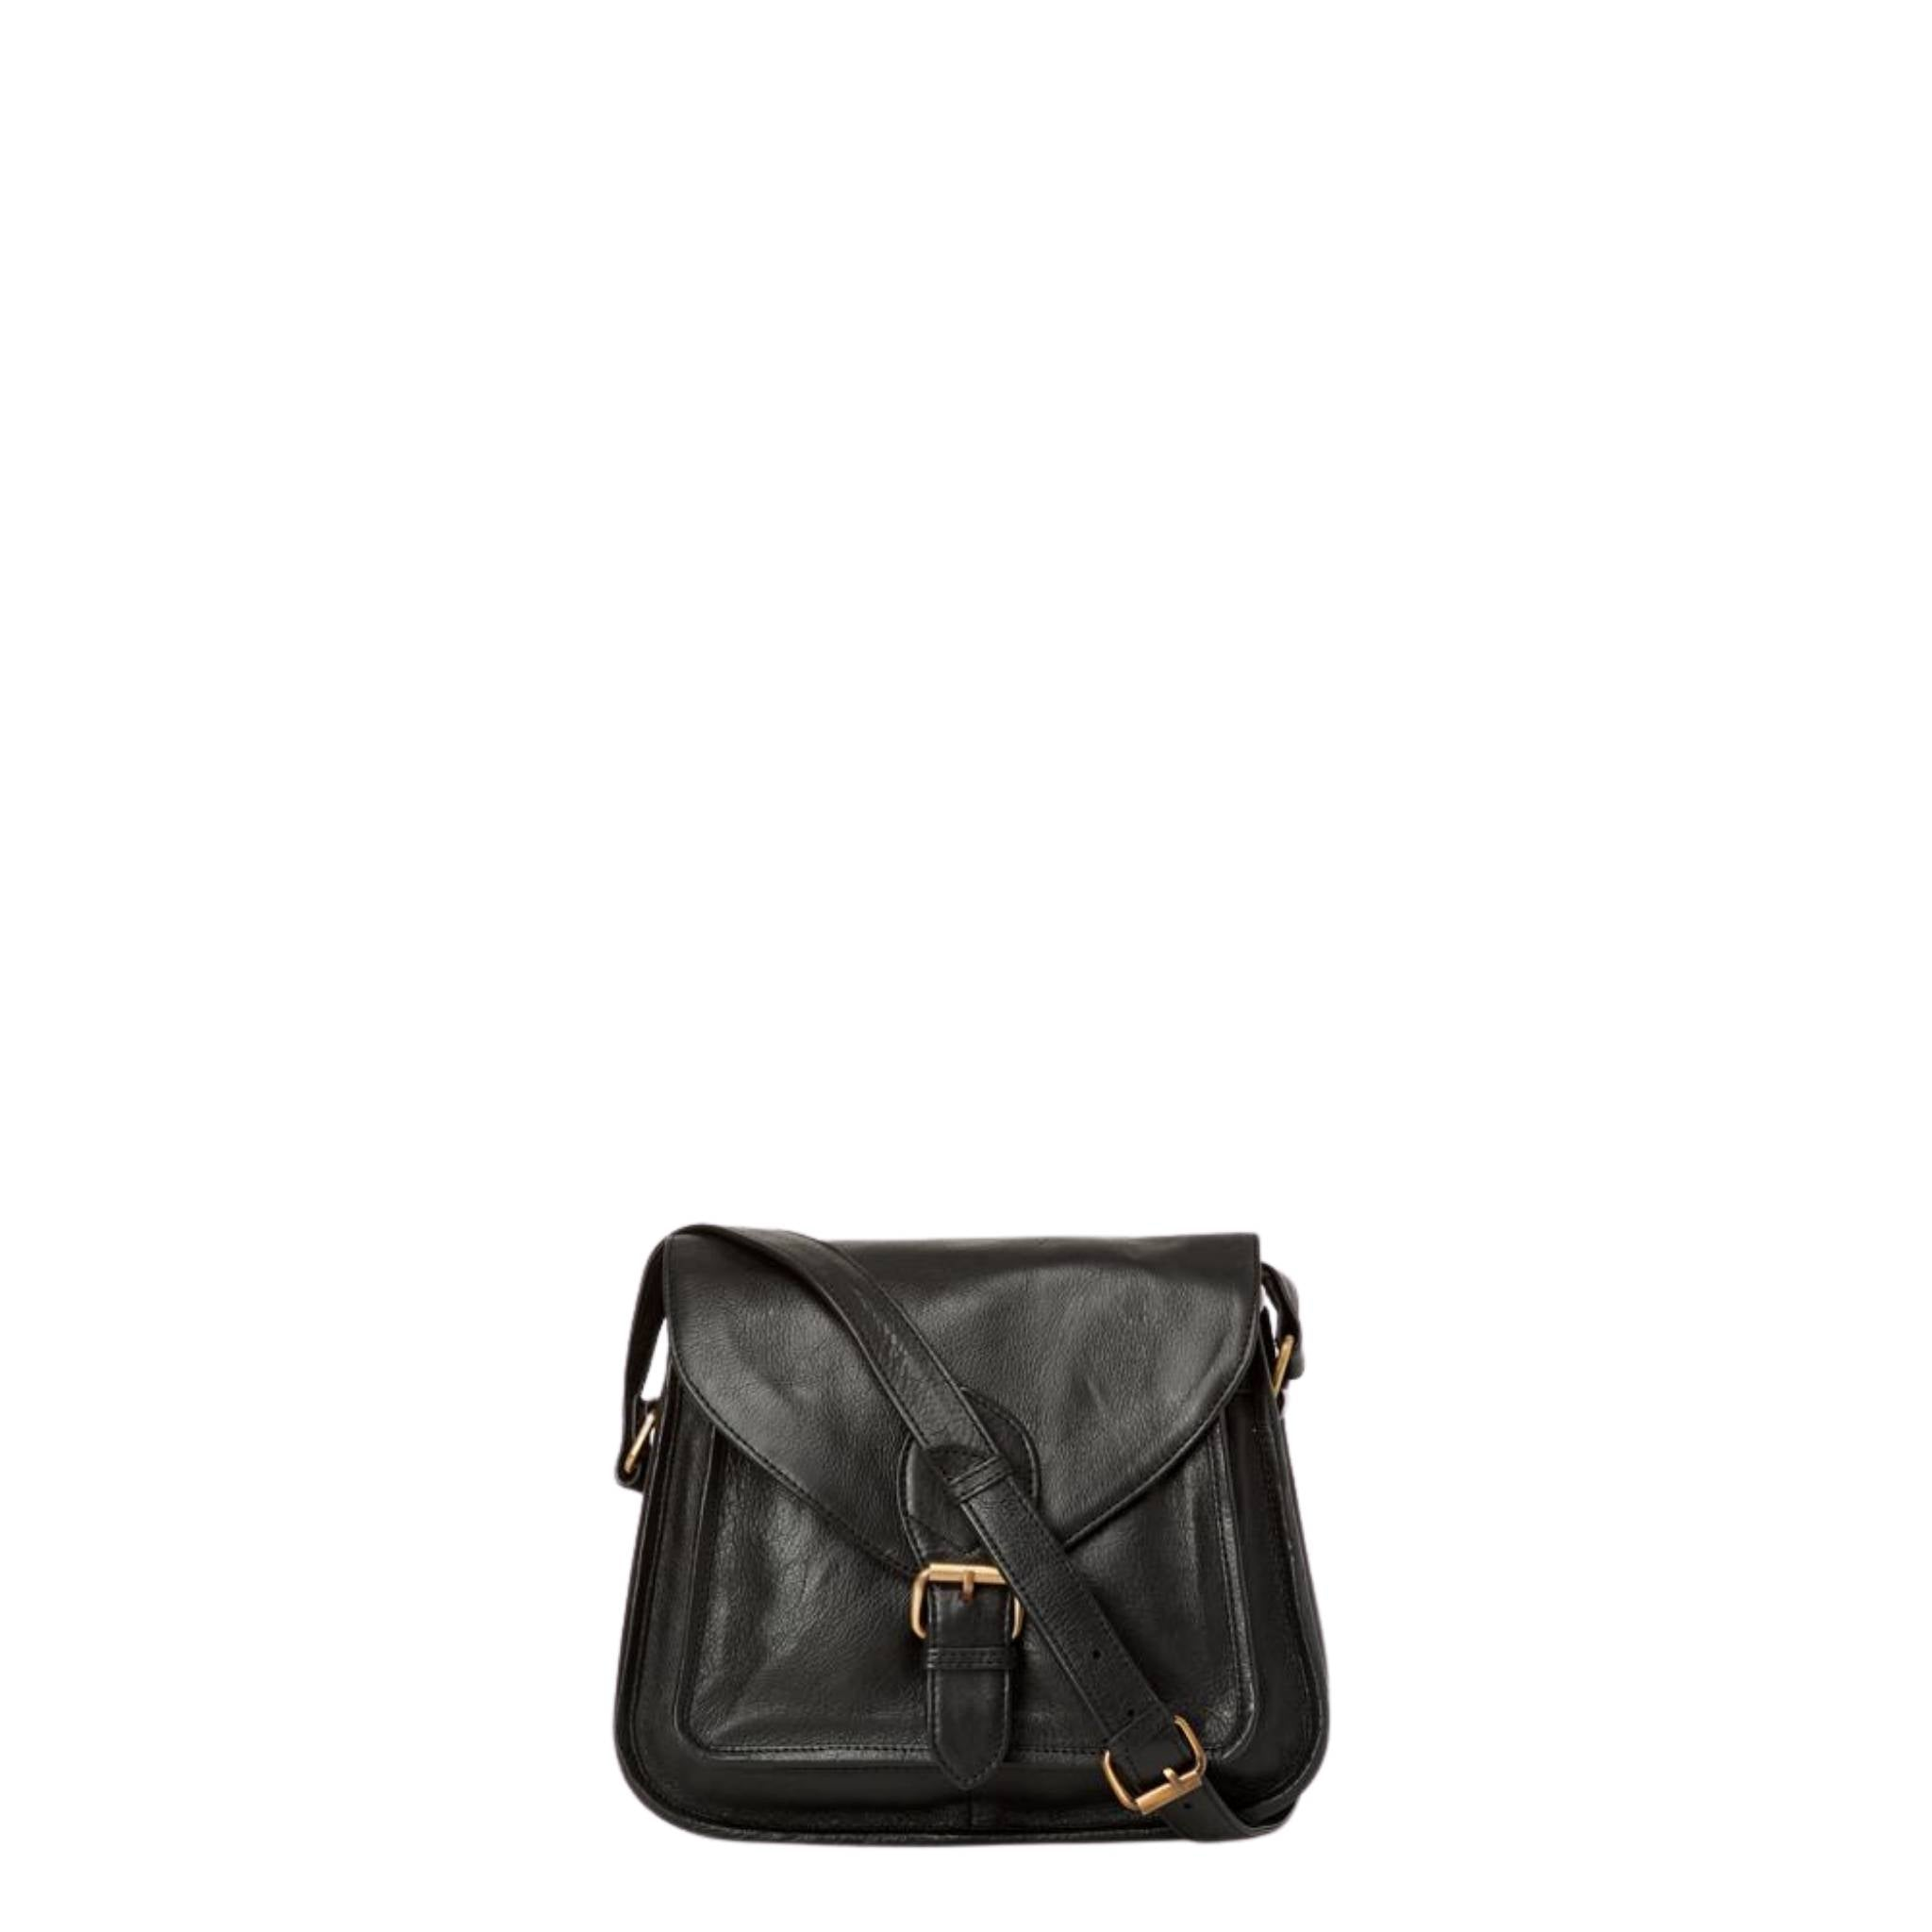 Black leather satchel with foldover front flap and buckle